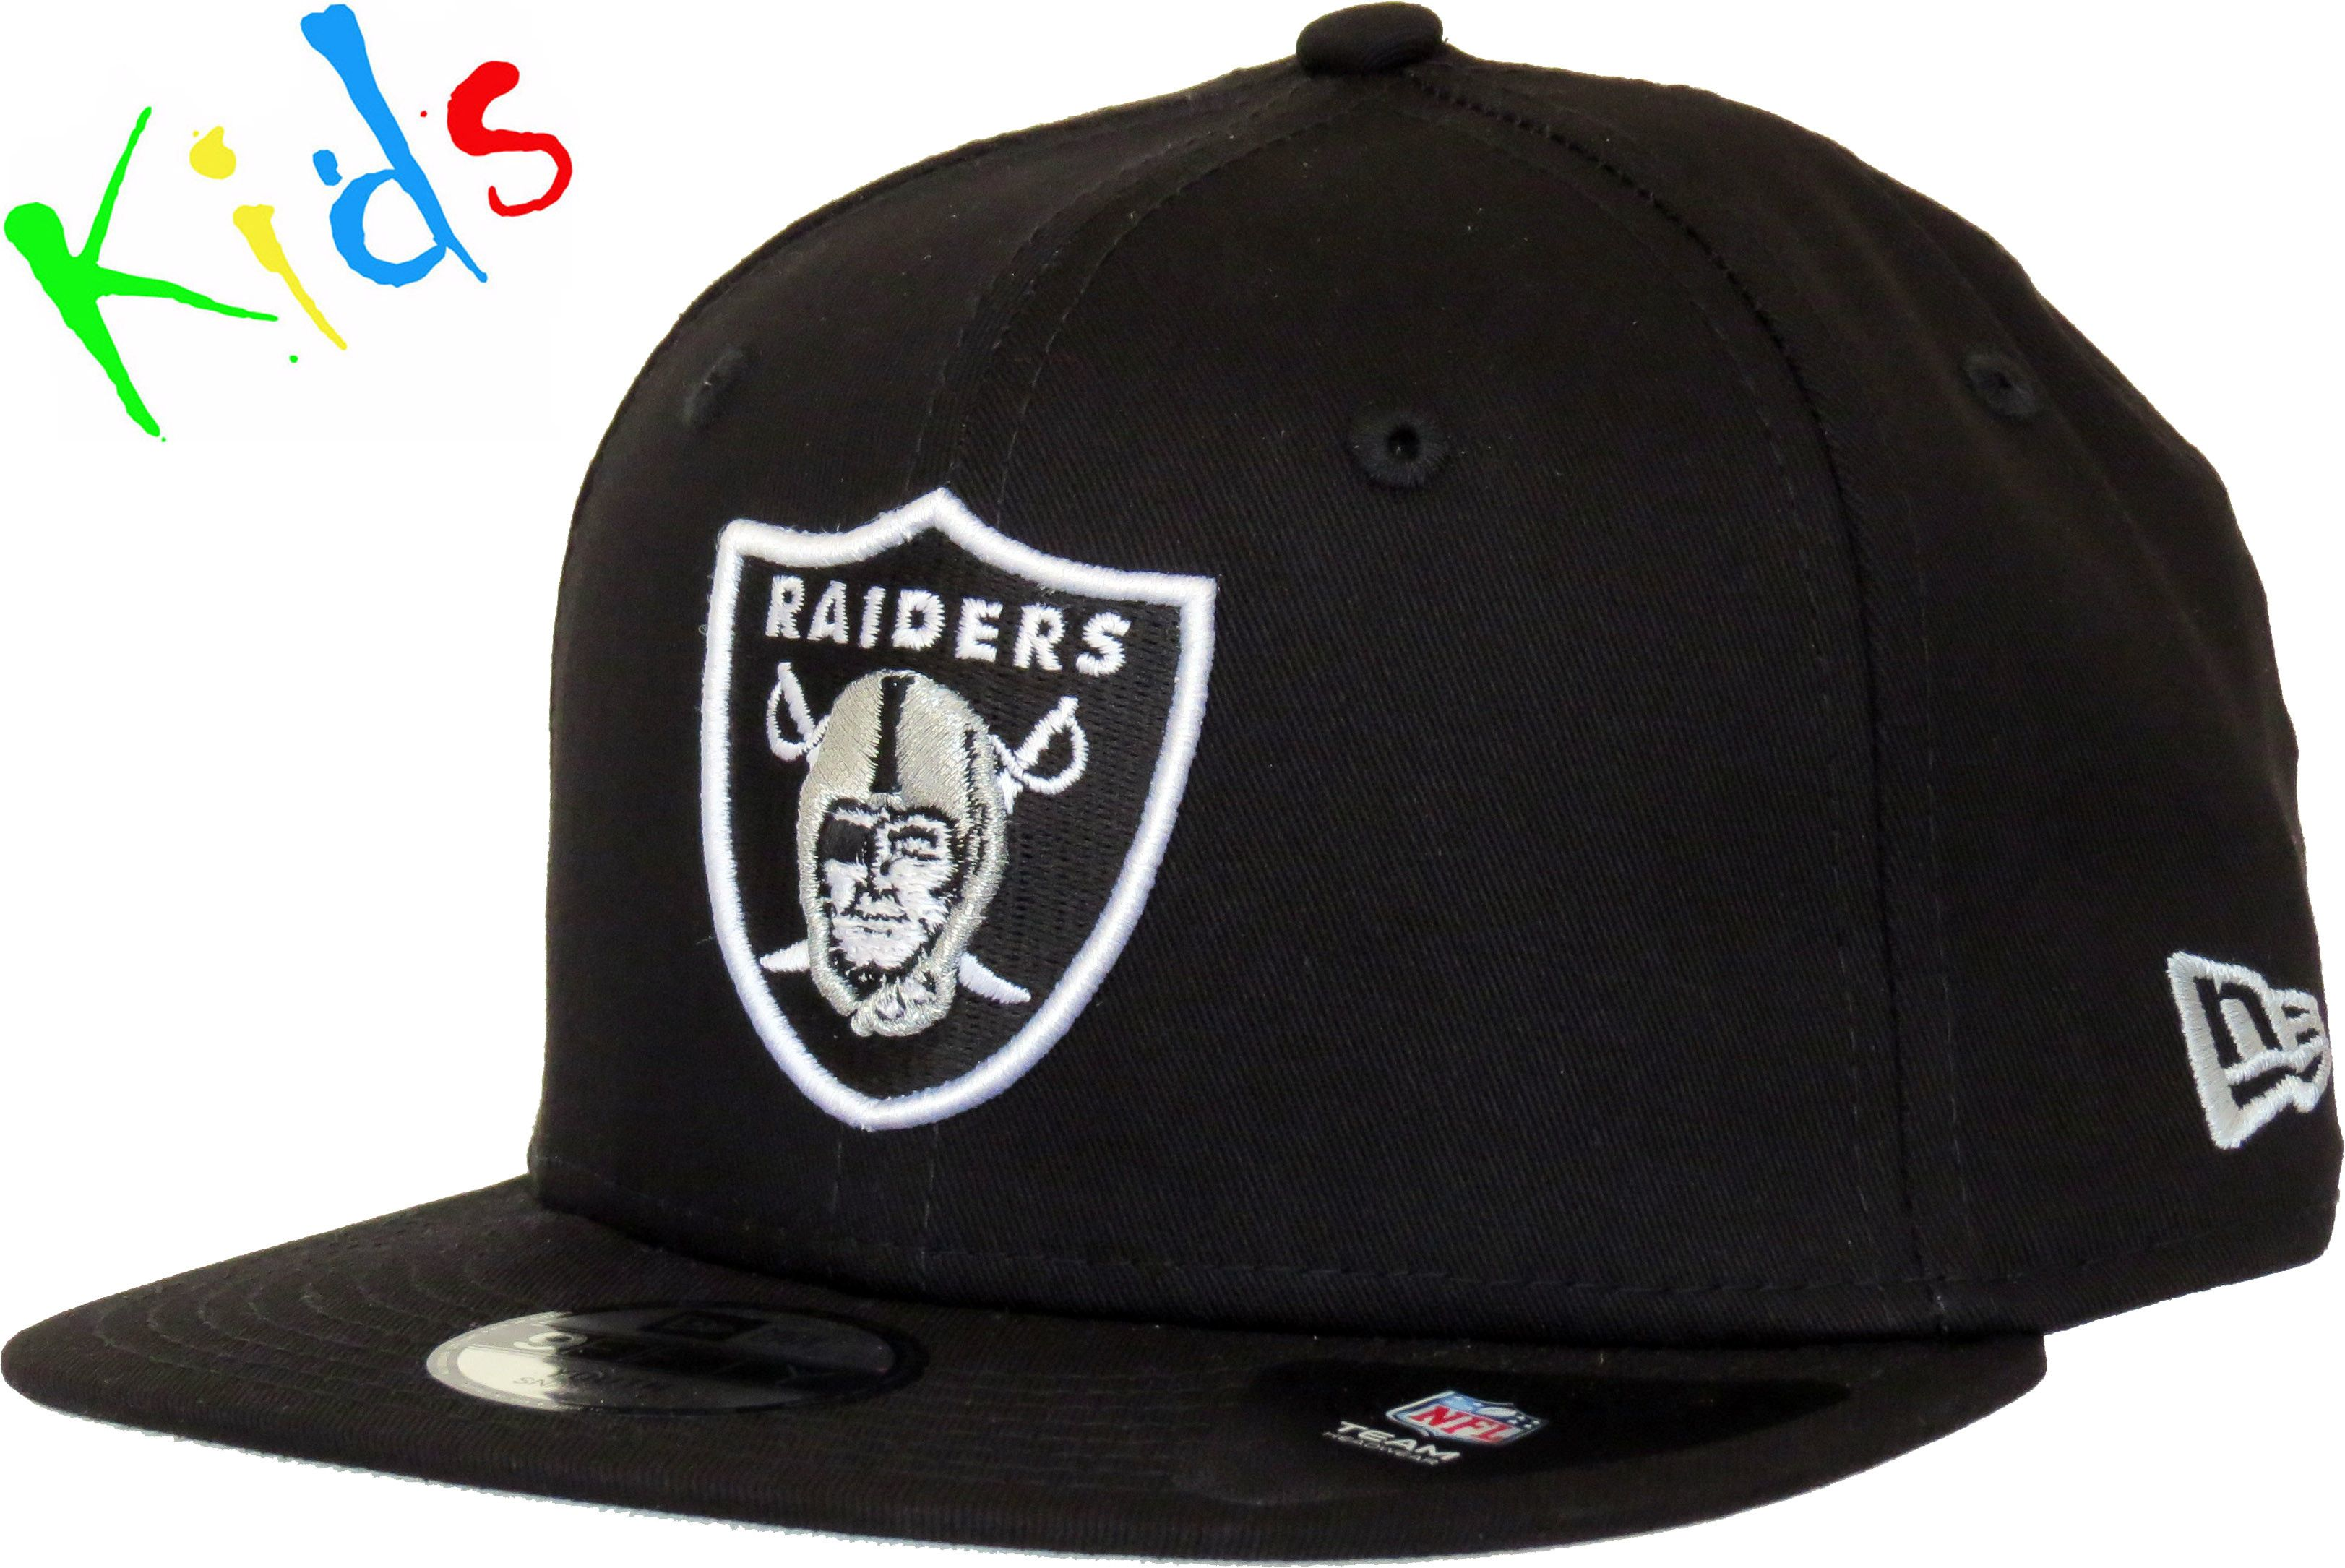 New Era Kids 9Fifty NFL Classic Snapback Cap. Black with the Oakland Raiders  front logo bfab334ee